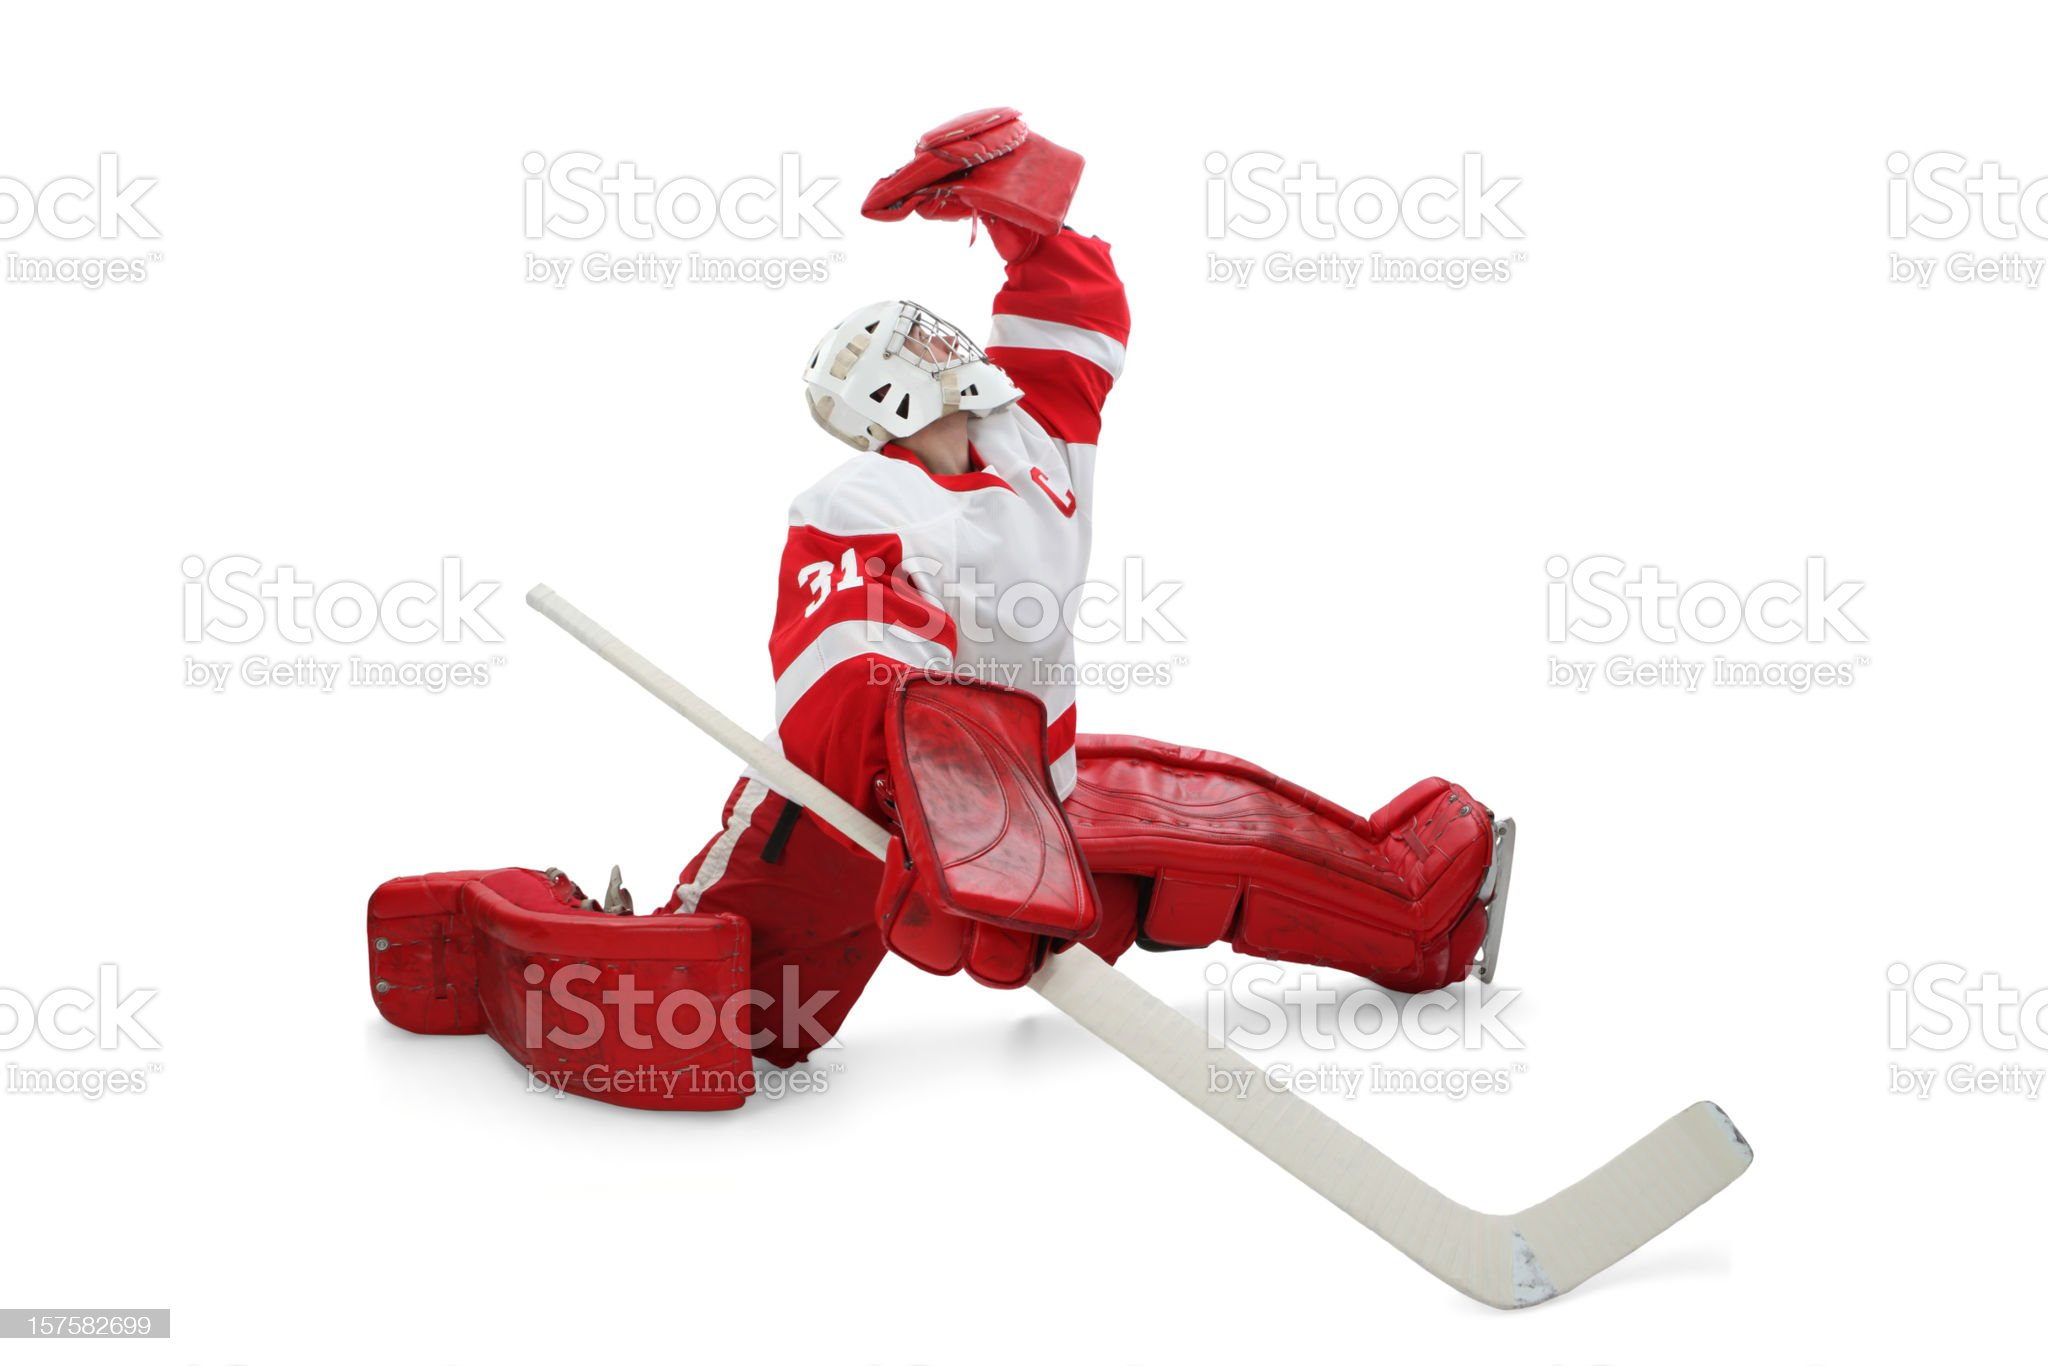 Hockey Goalie Making Save royalty-free stock photo